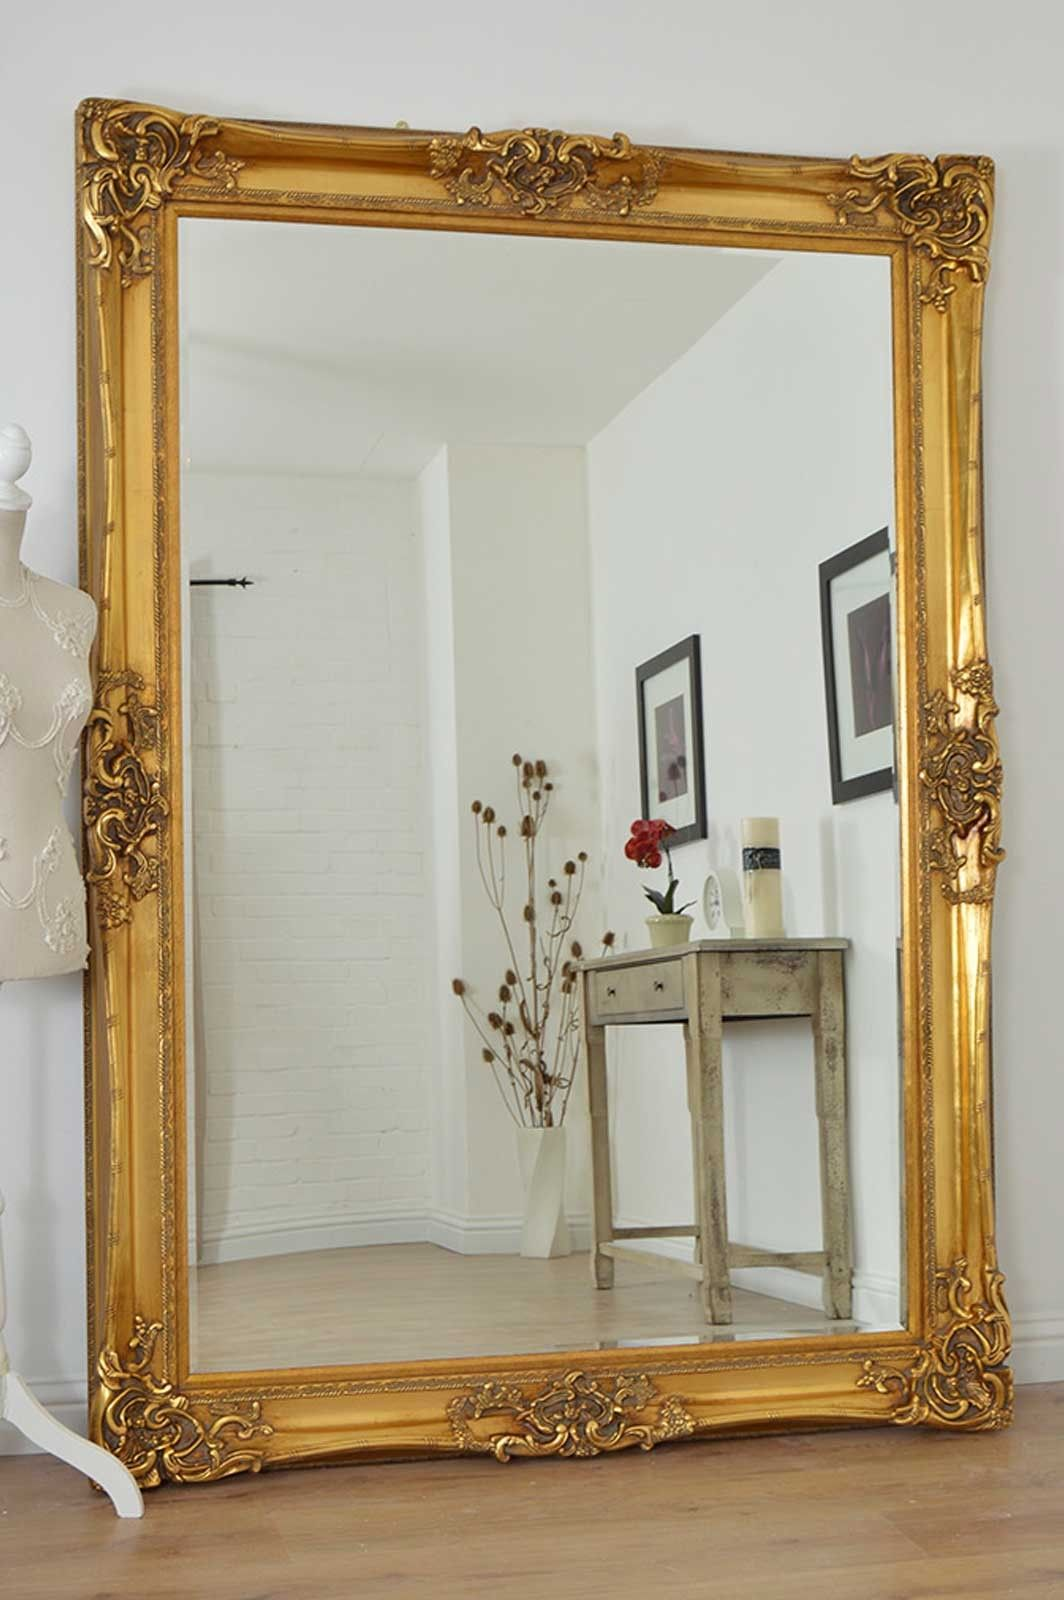 Large gold very ornate antique design wall mirror 7ft x for Large portrait mirror